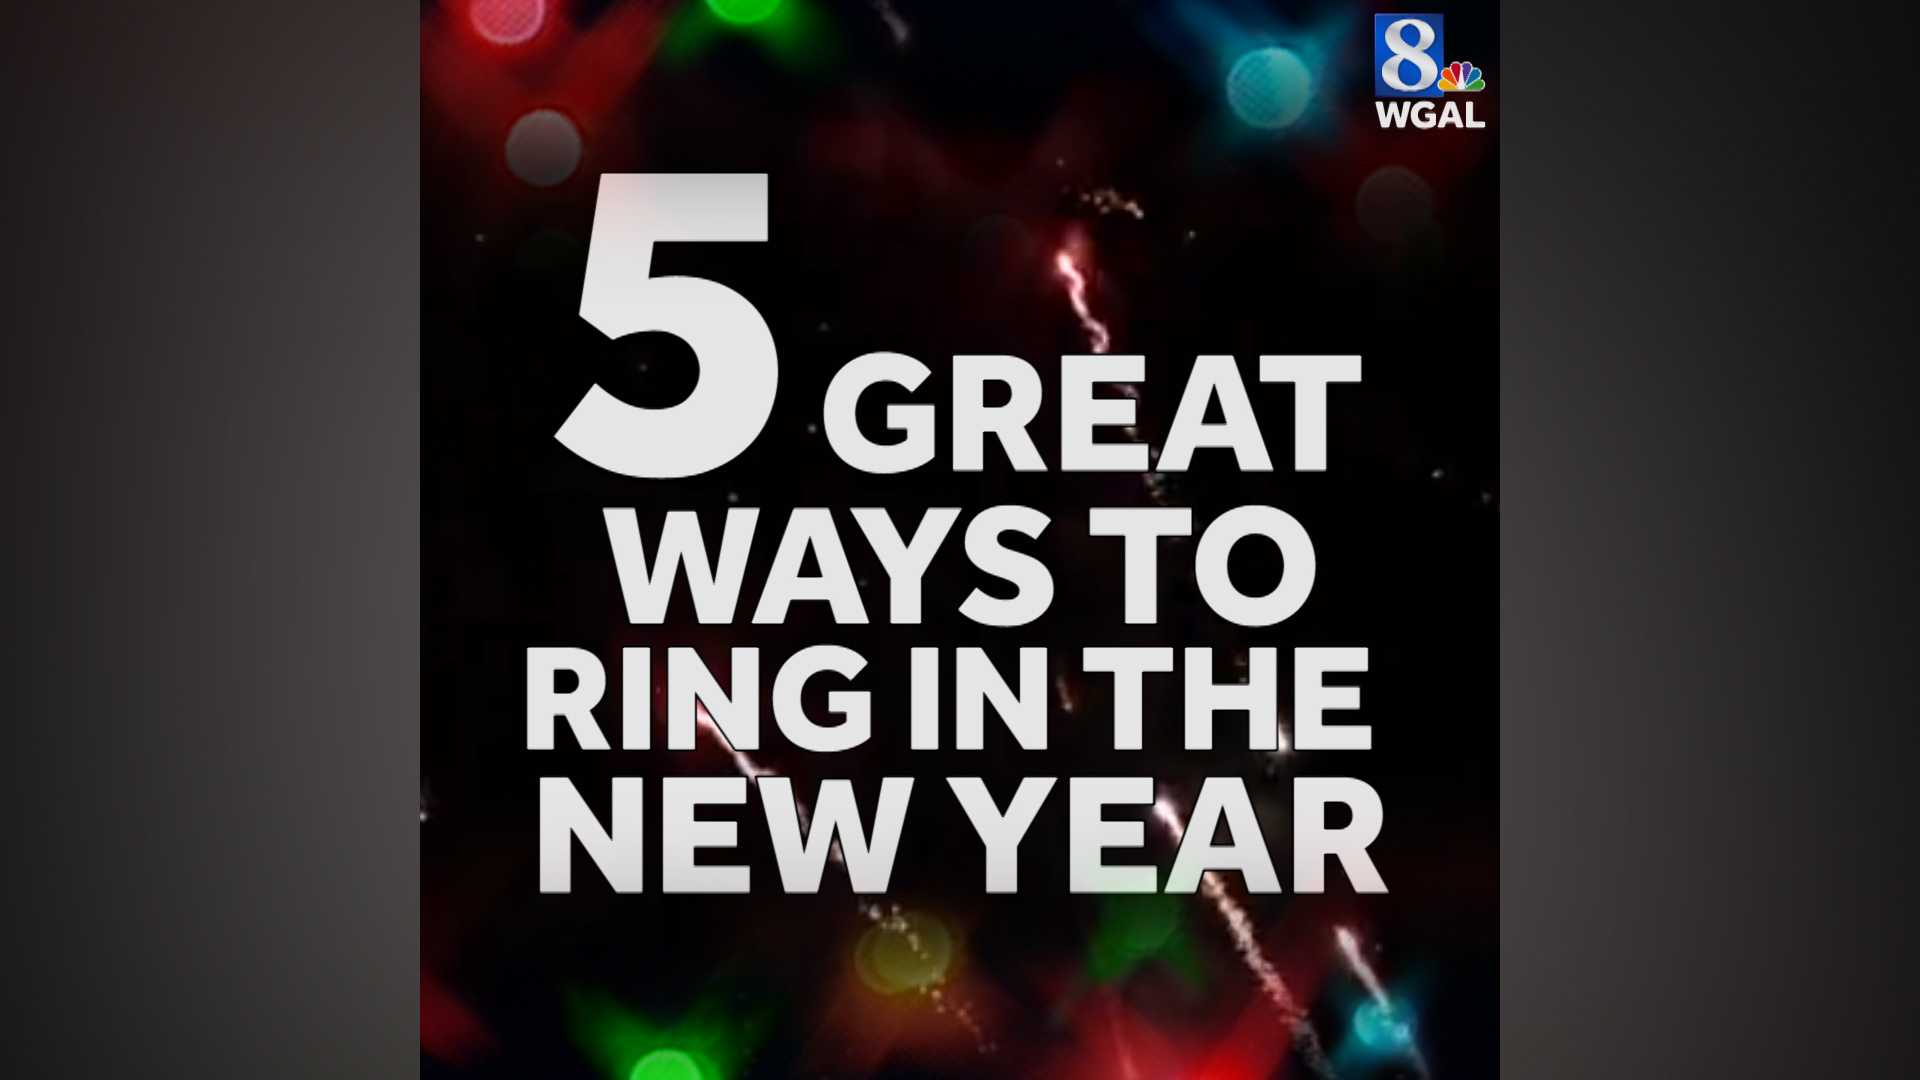 5 Great Ways to Ring in the New Year